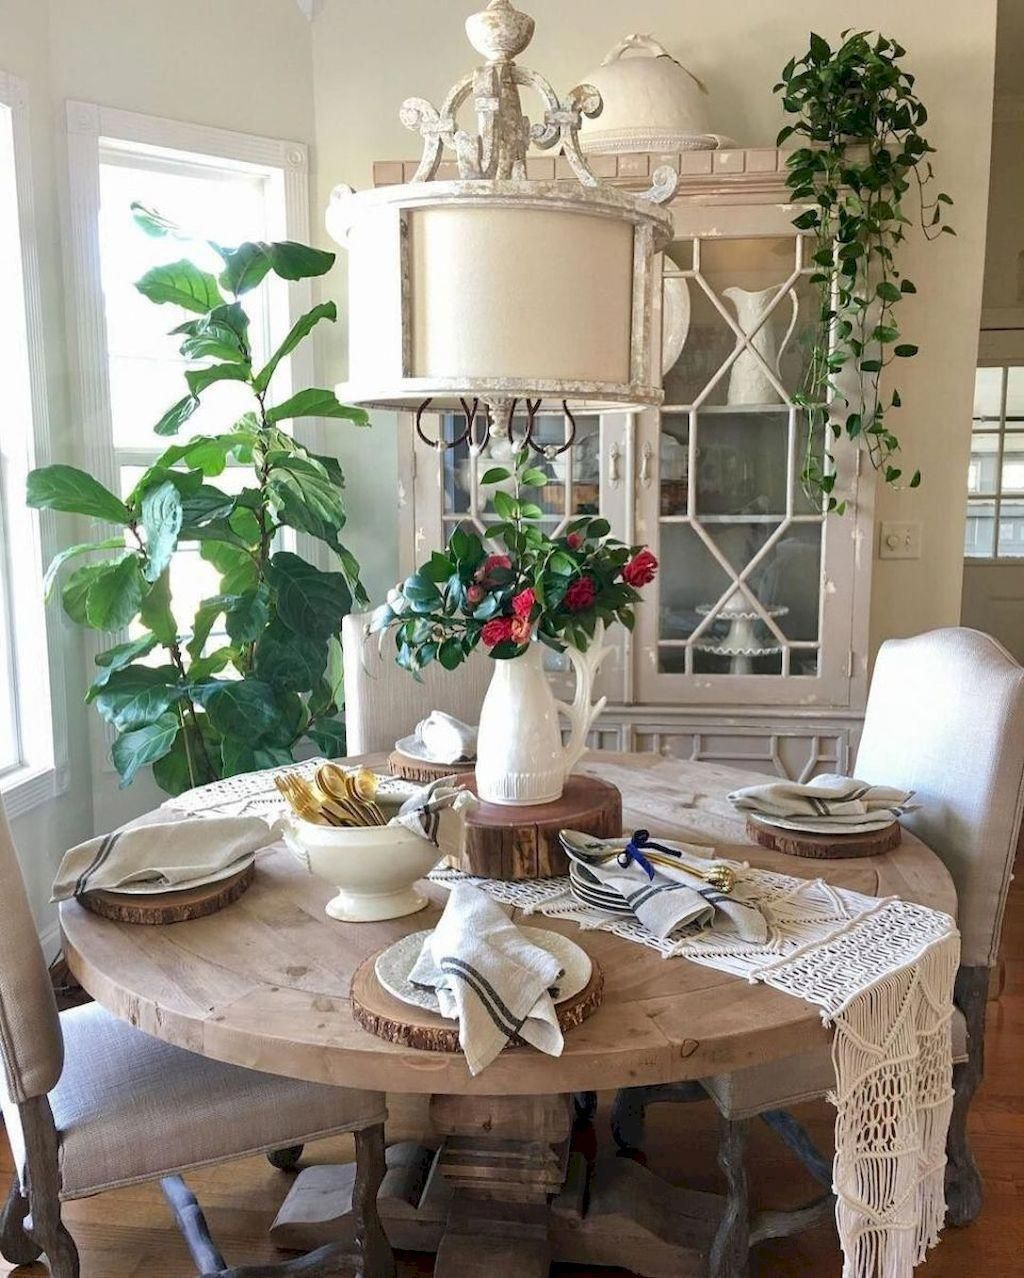 Top 11 Incredible Cozy And Rustic Chic Living Room For: 39 Best Farmhouse Dining Room Makeover Decor Ideas